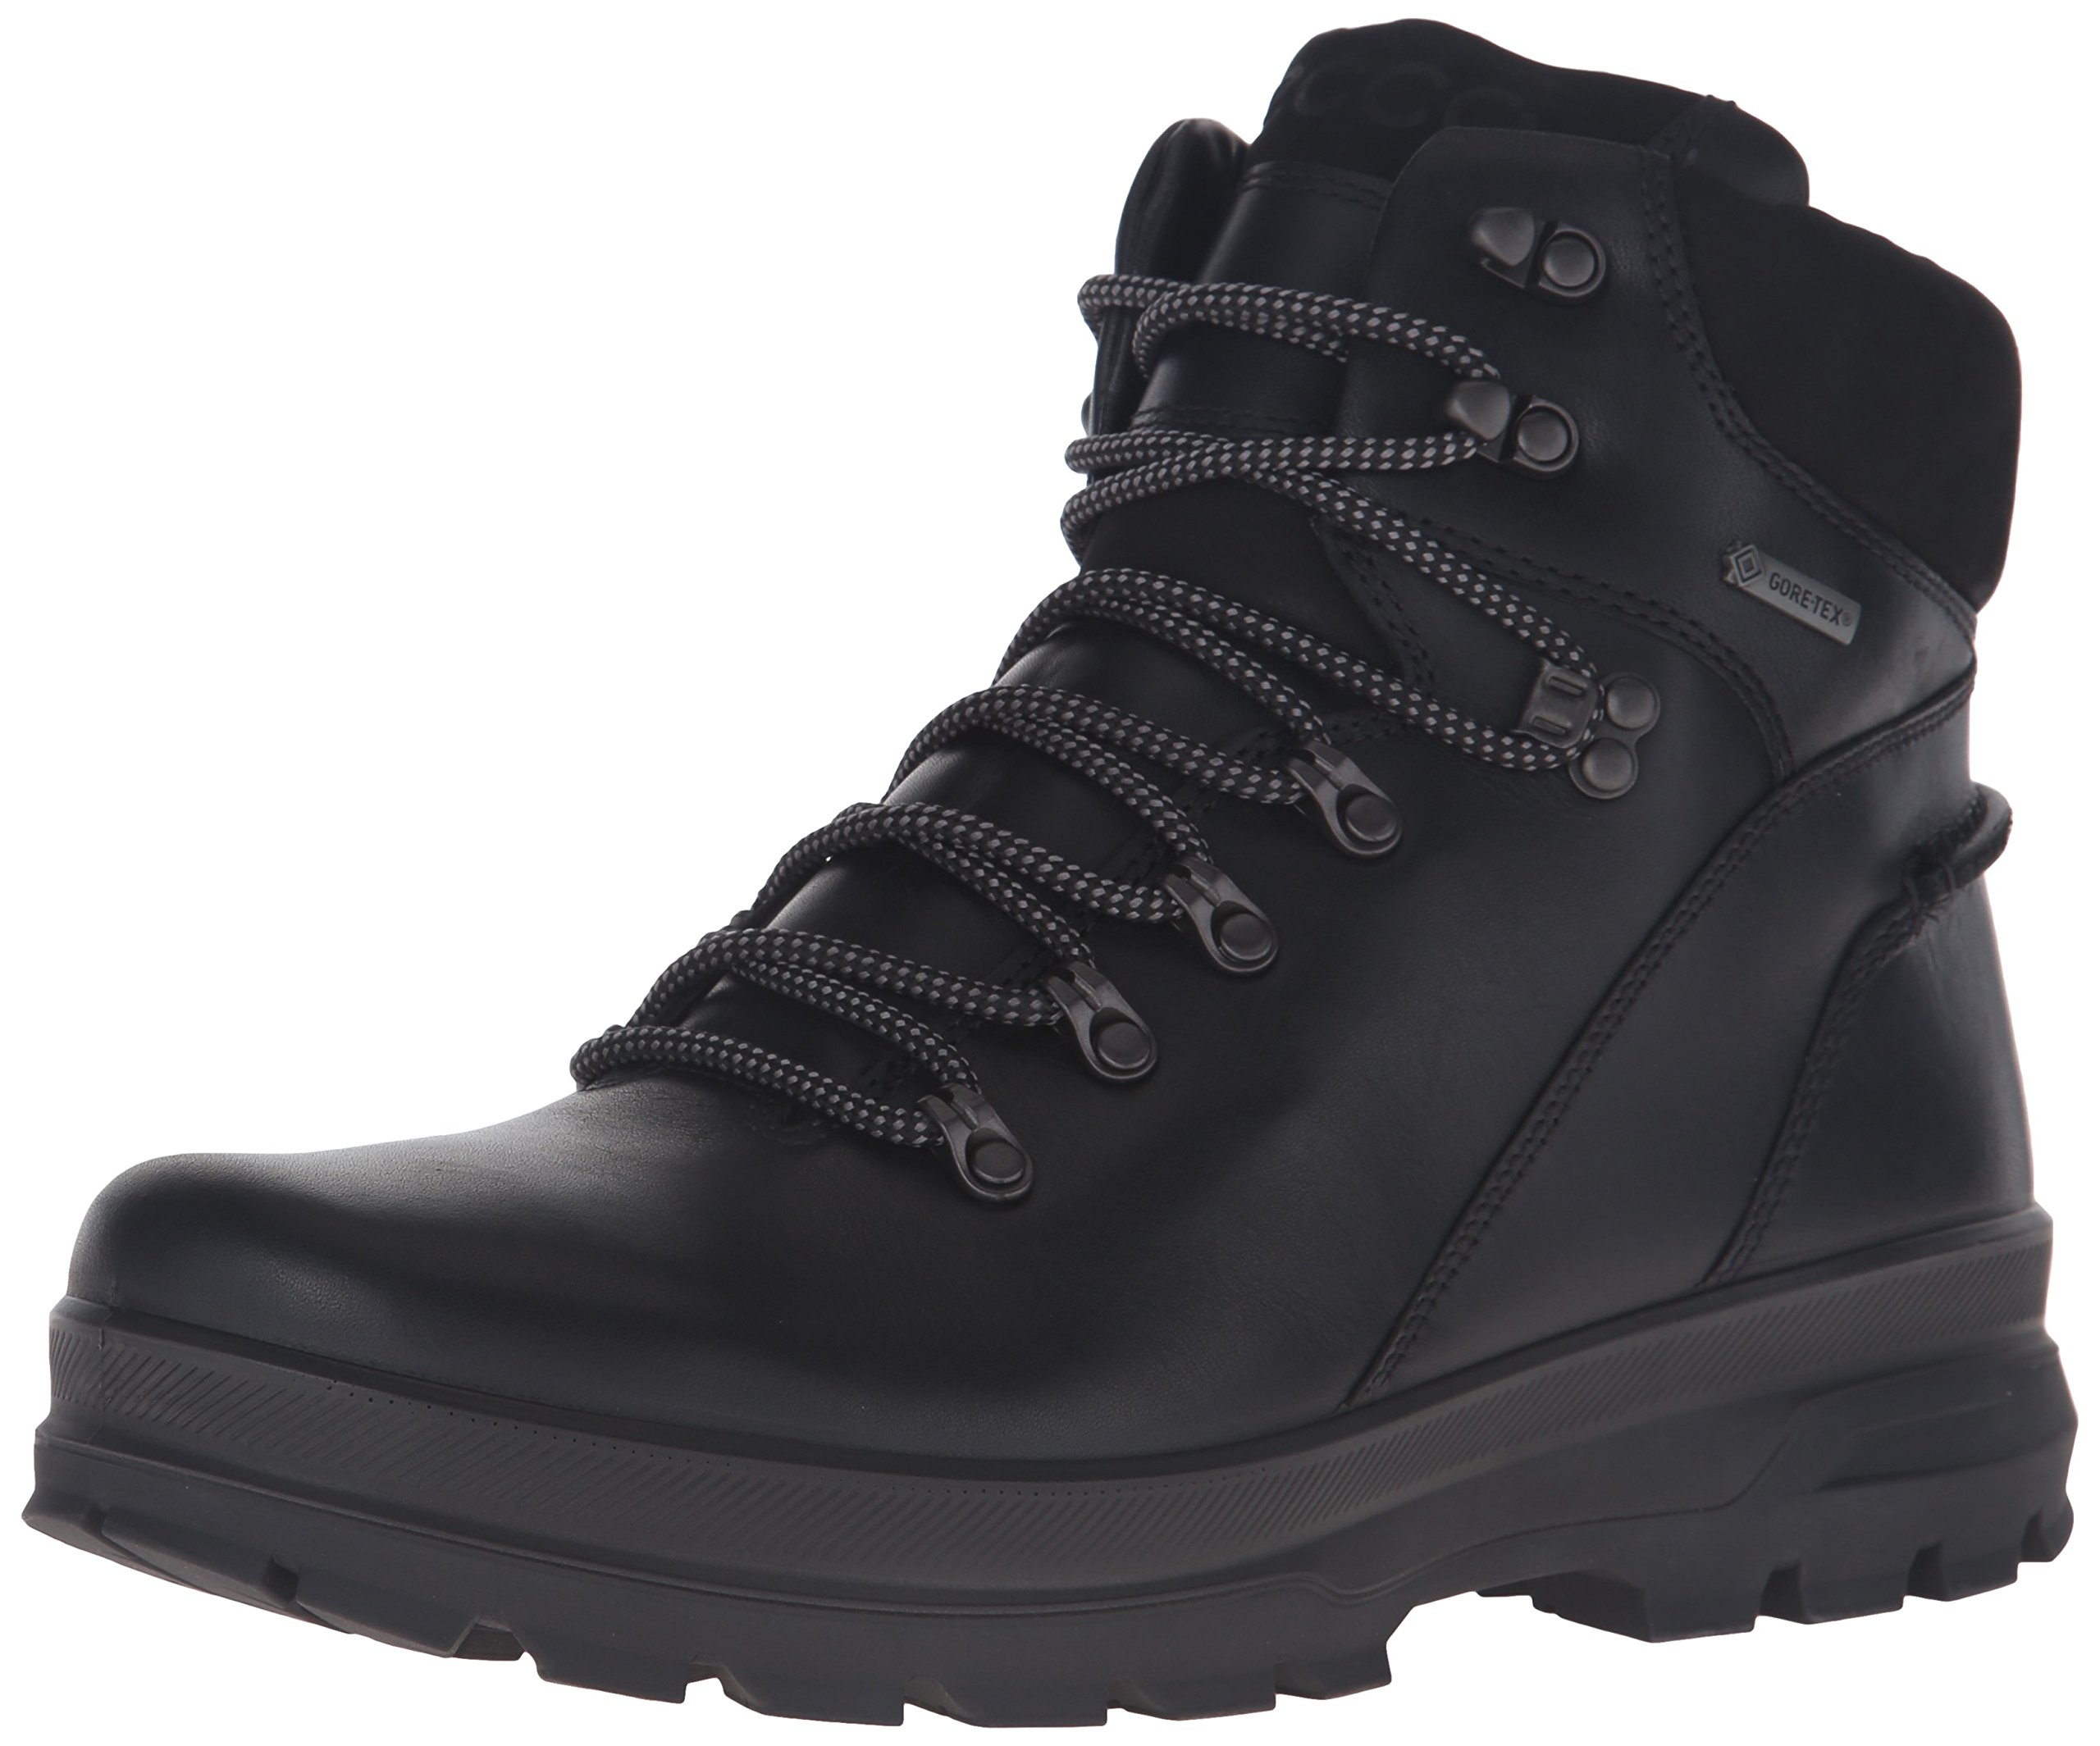 ECCO Men's Rugged Track GTX High Hiking, Black, 43 EU/9-9.5 M US